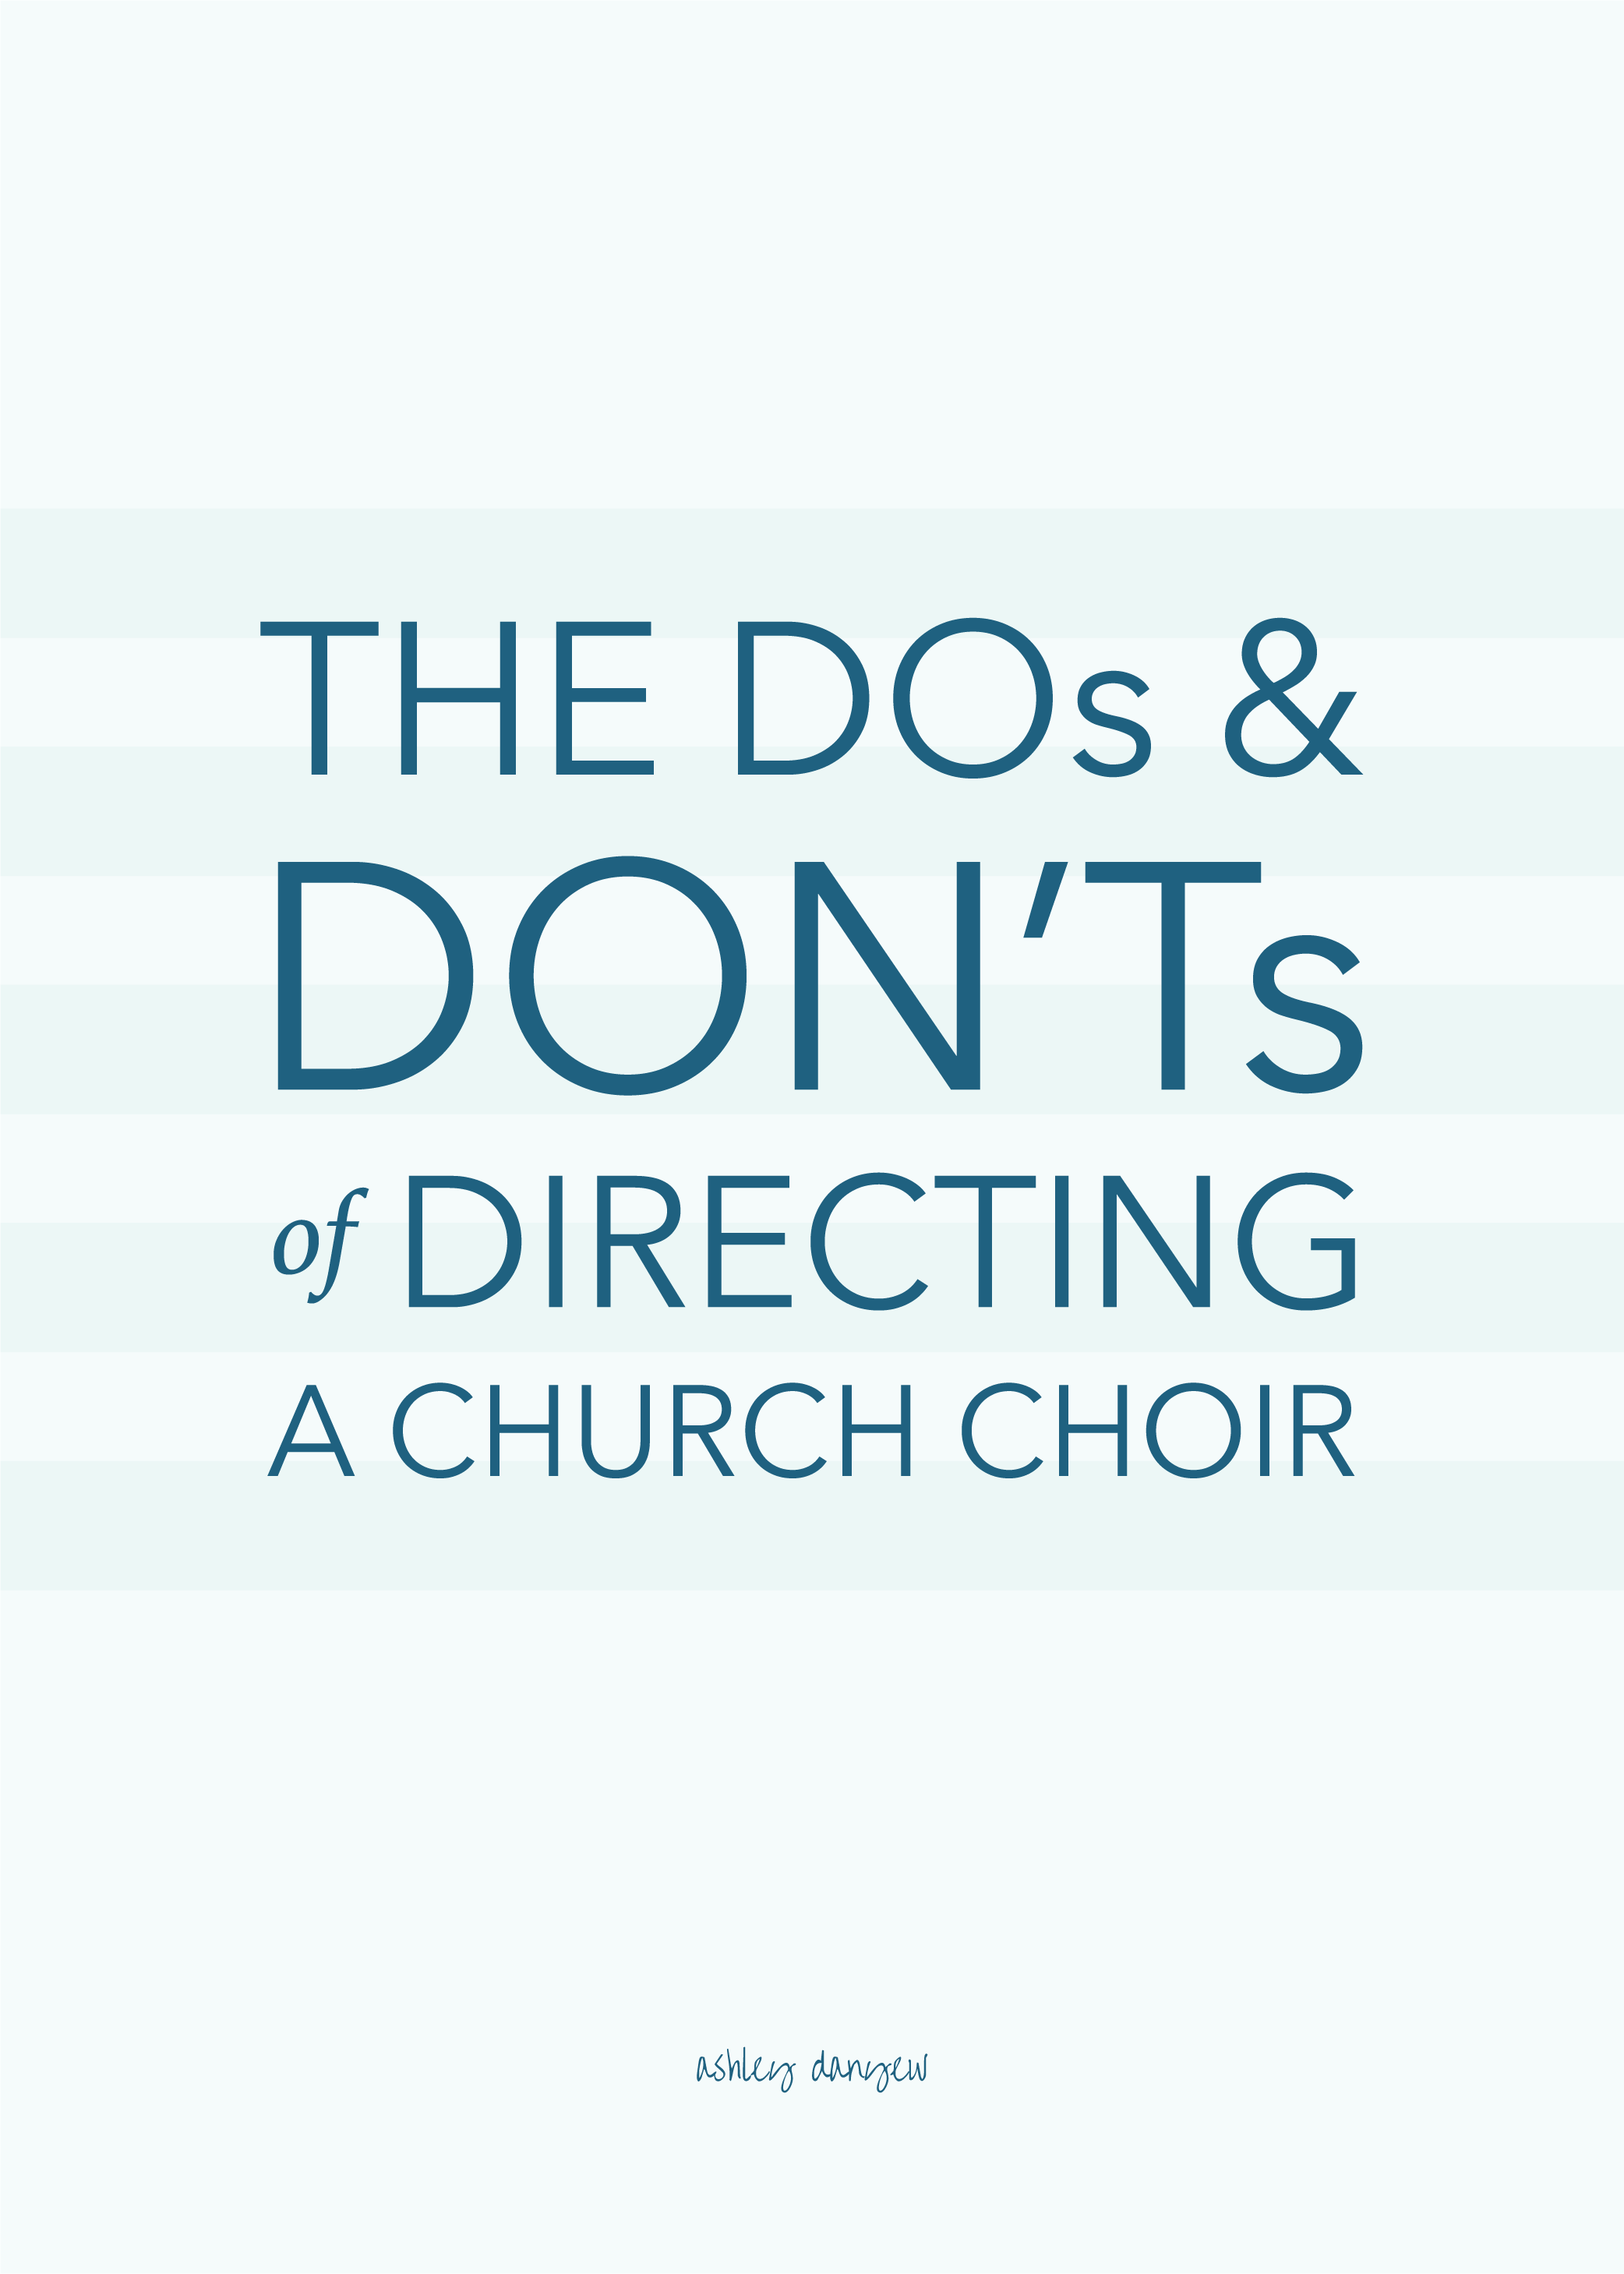 The Dos and Don'ts of Directing a Church Choir-48.png